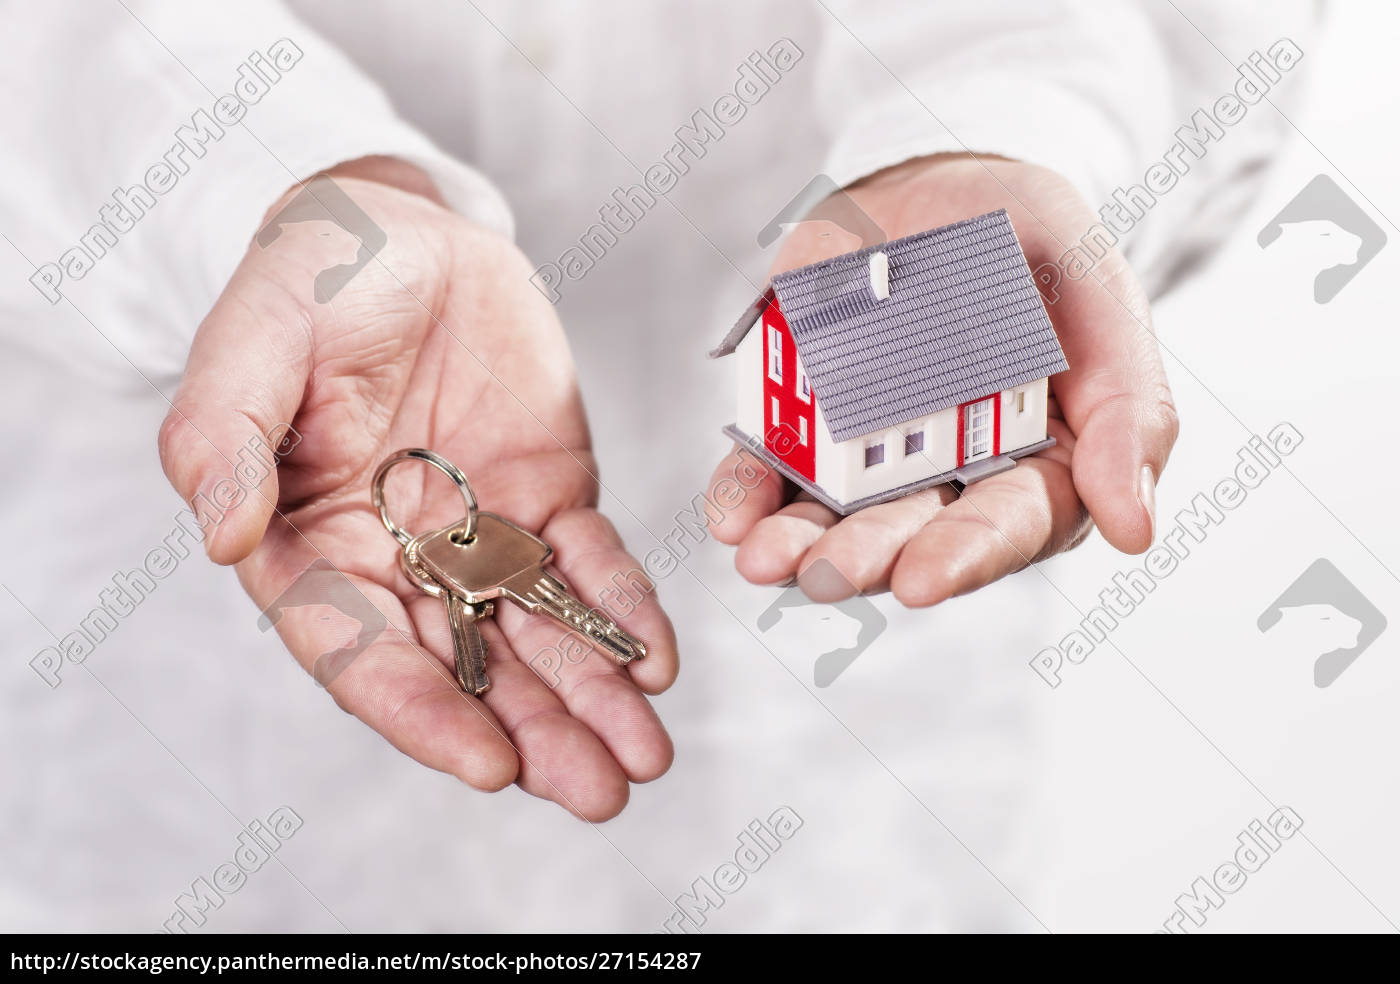 hands, holding, house, and, keys - 27154287